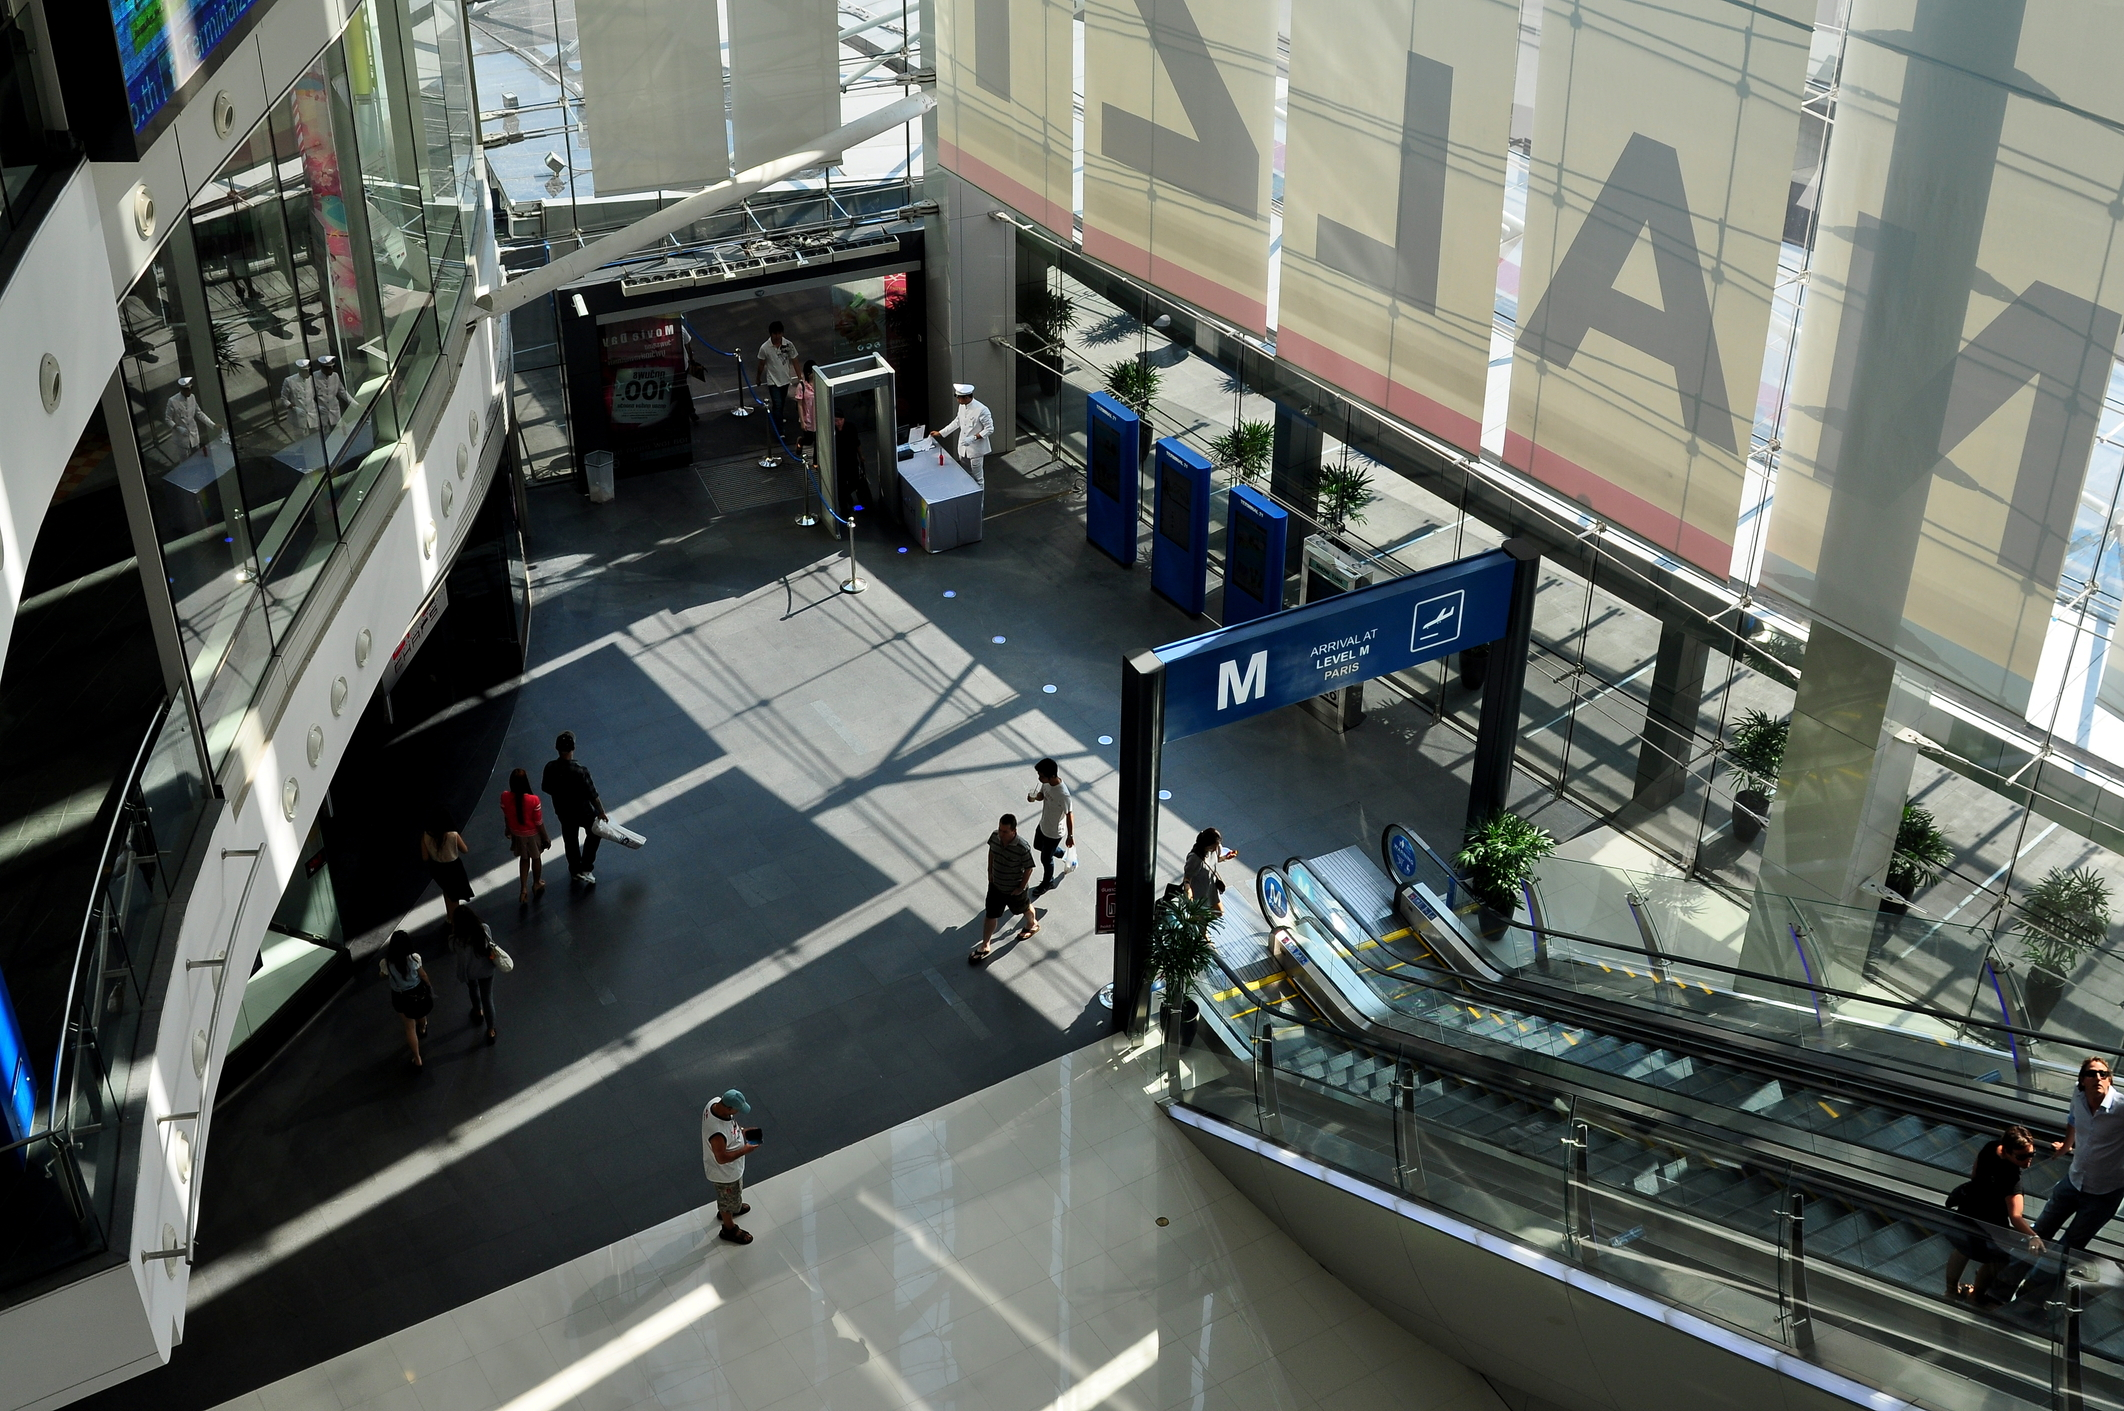 The Airport themed Terminal 21 Shopping Mall in Bangkok